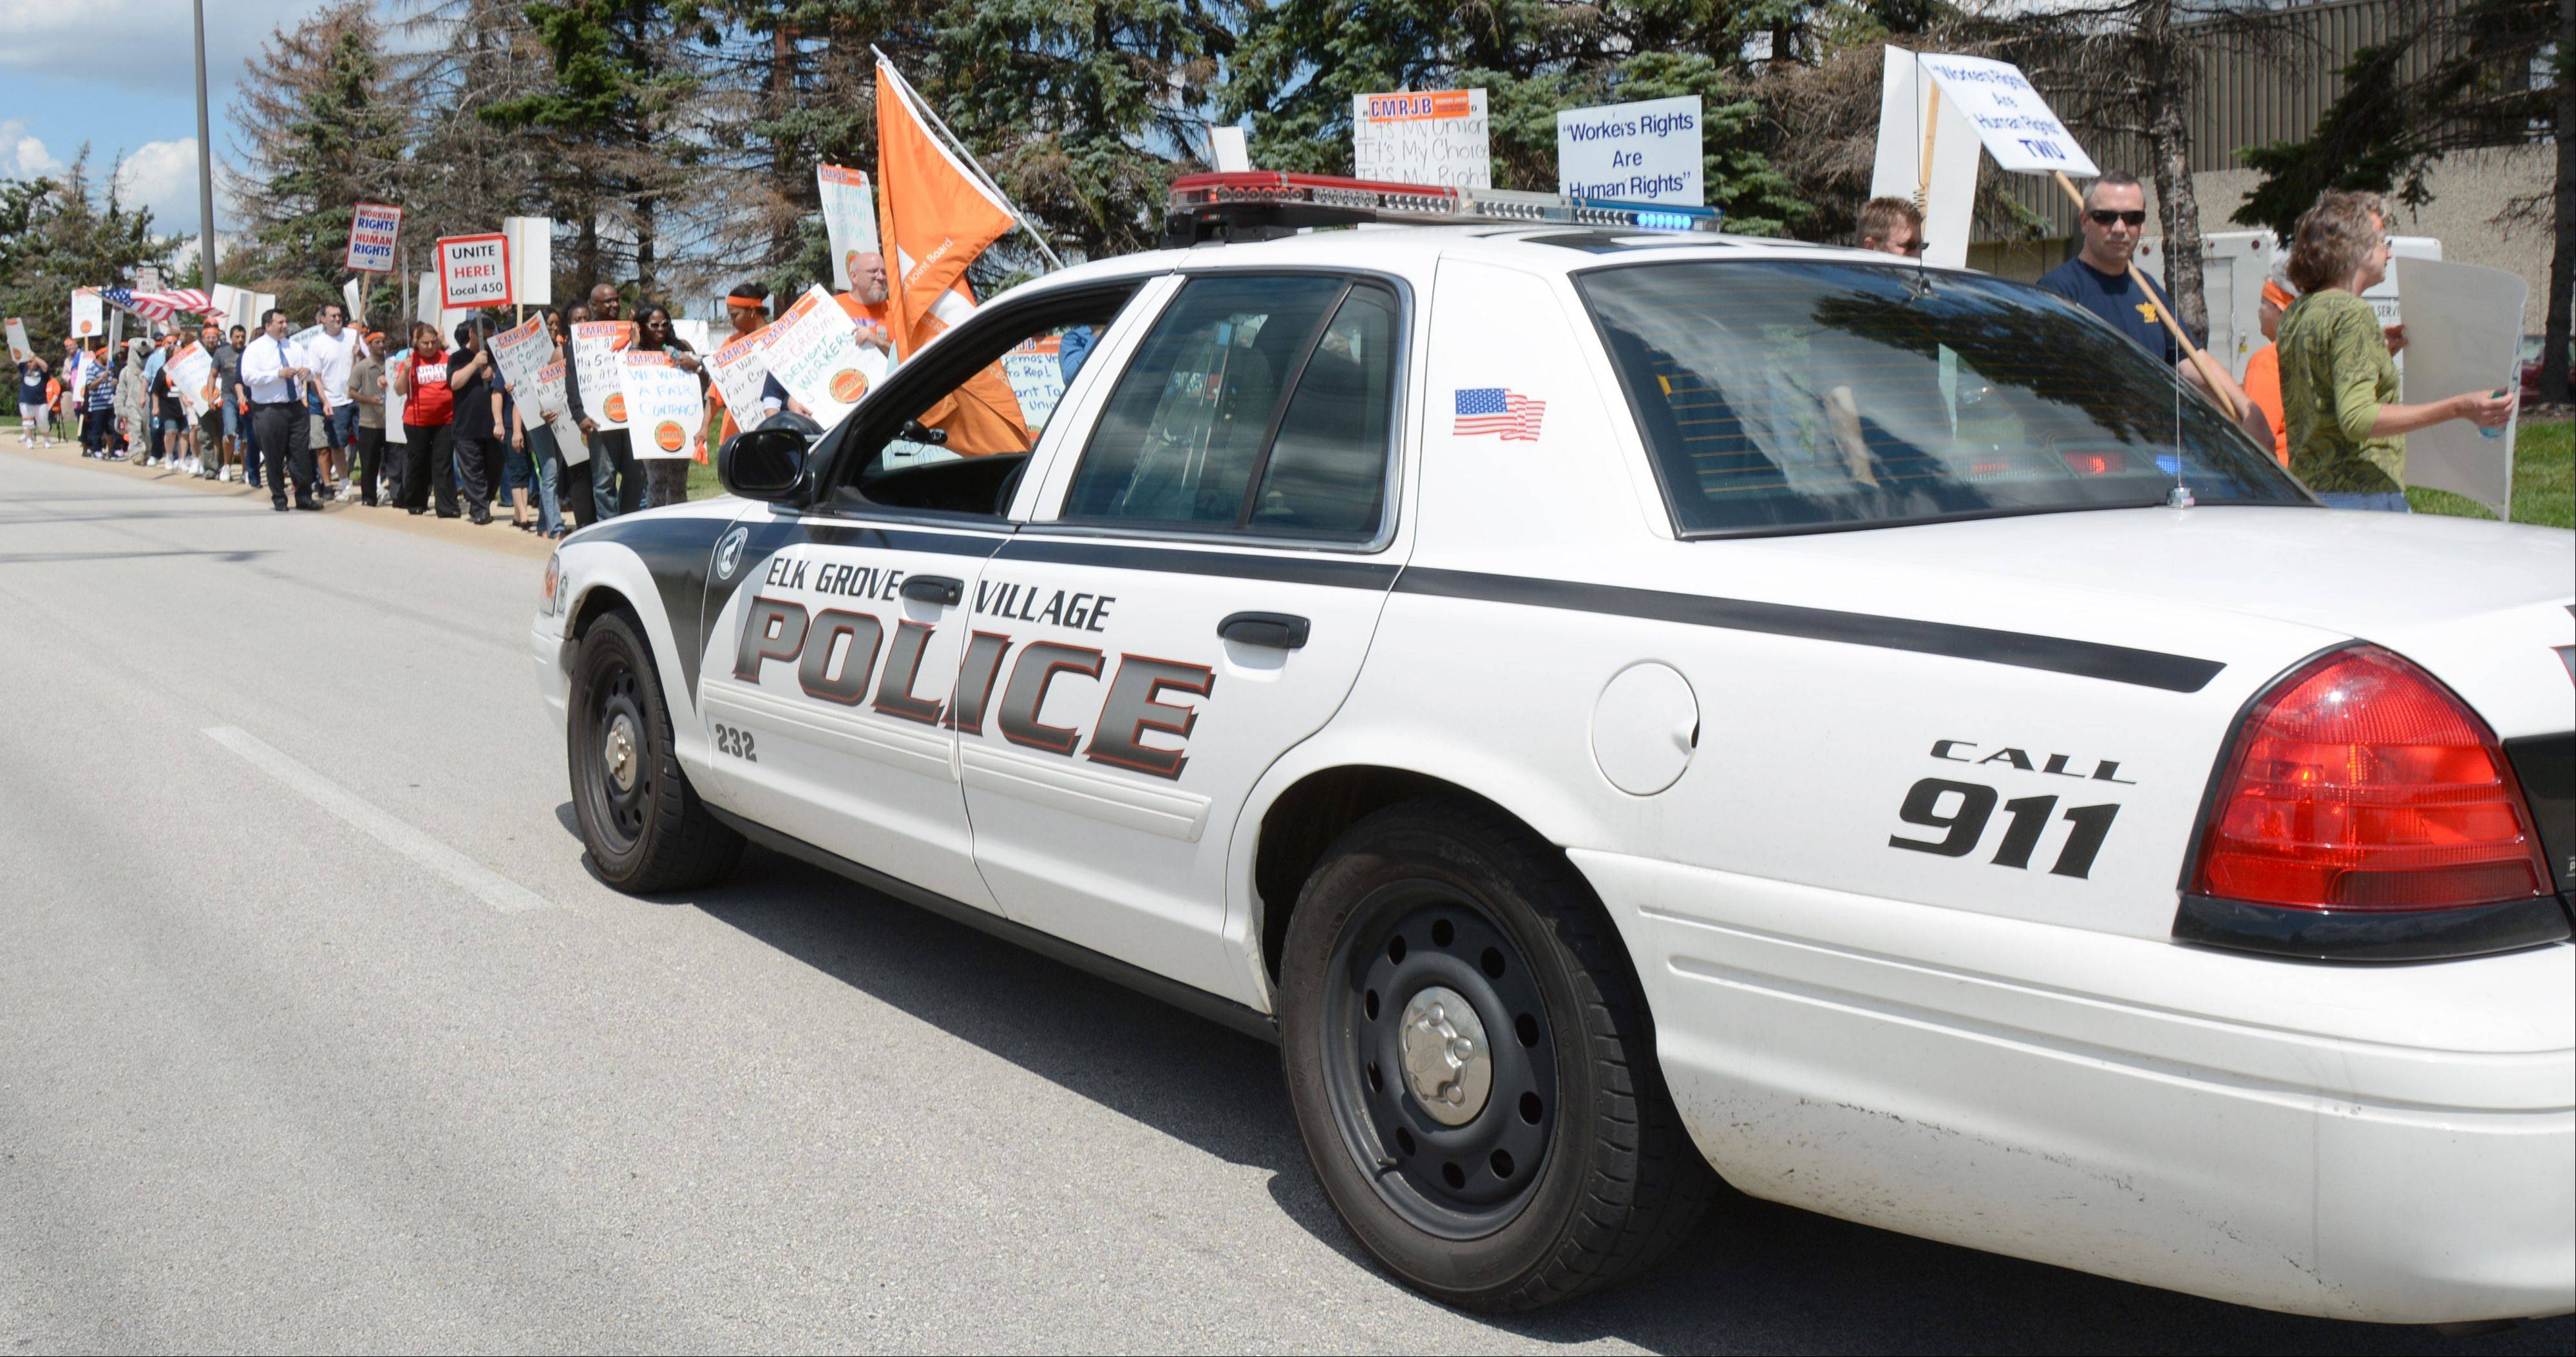 Elk Grove Village police asked protesters to remain on the sidewalk Thursday during a worker rally outside Grecian Delight. Workers are protesting the company's latest contract offer.